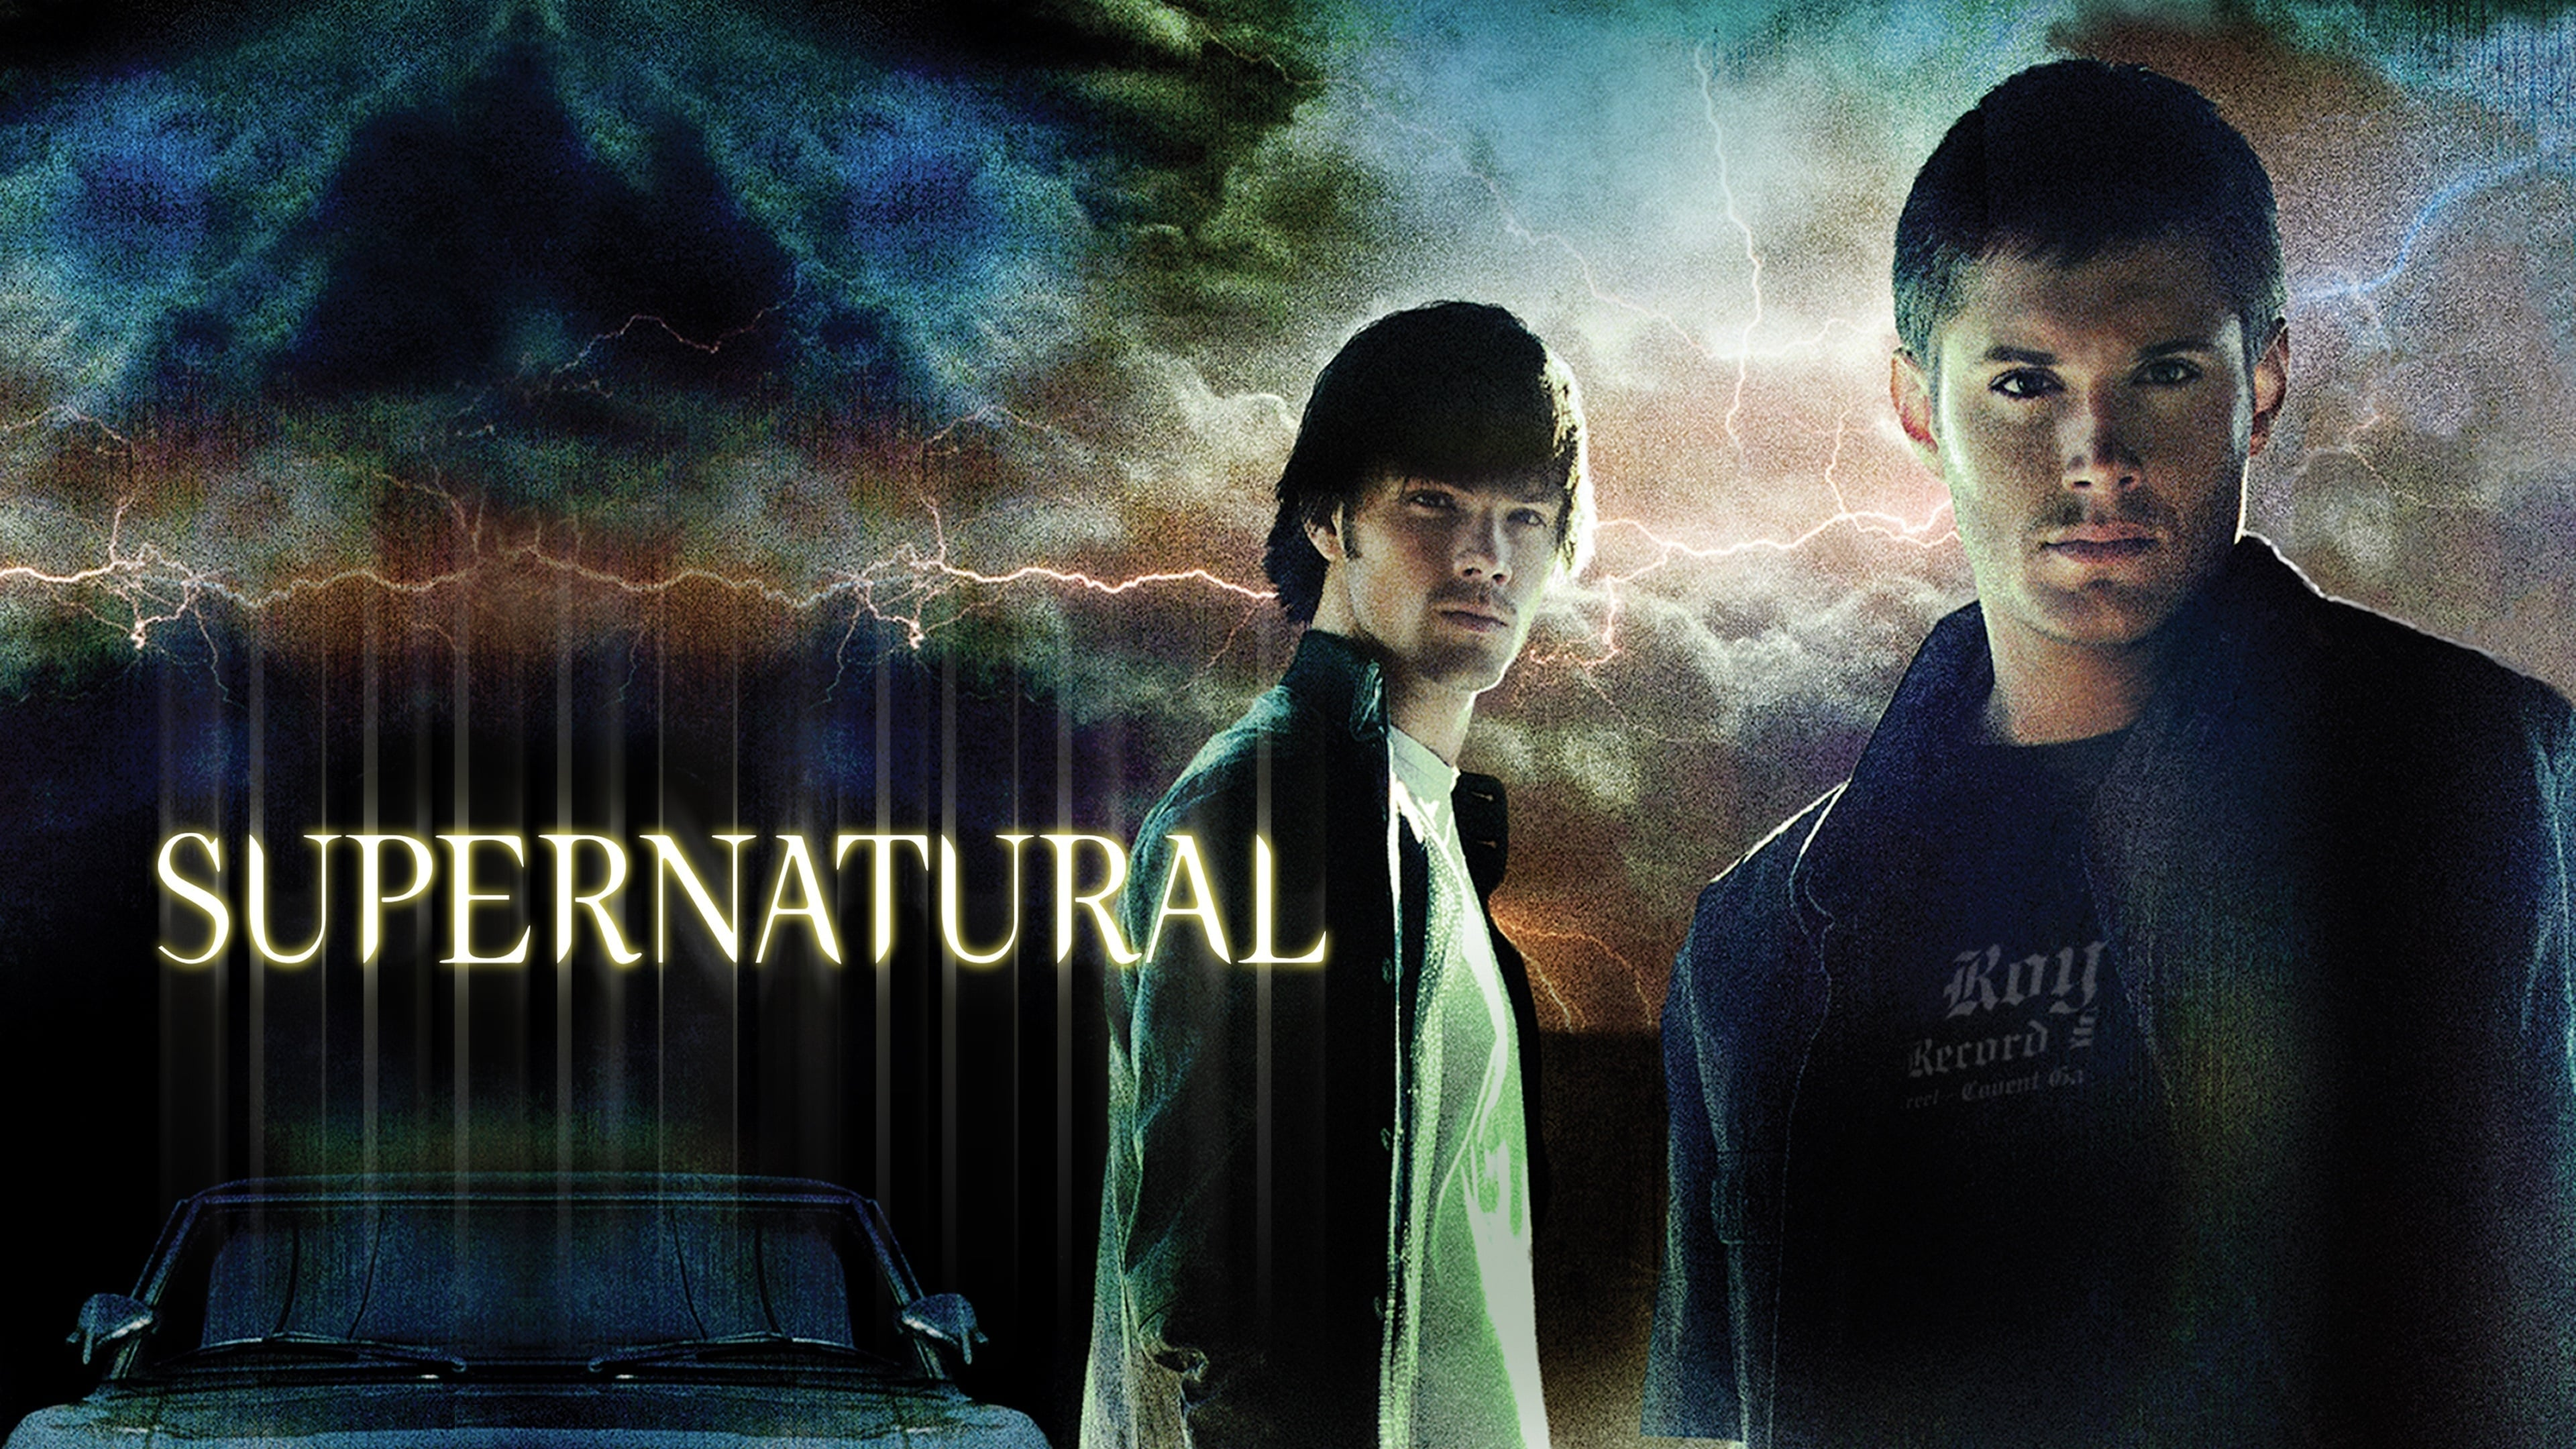 Supernatural - Season 4 Episode 2 Are You There, God? It's Me, Dean Winchester